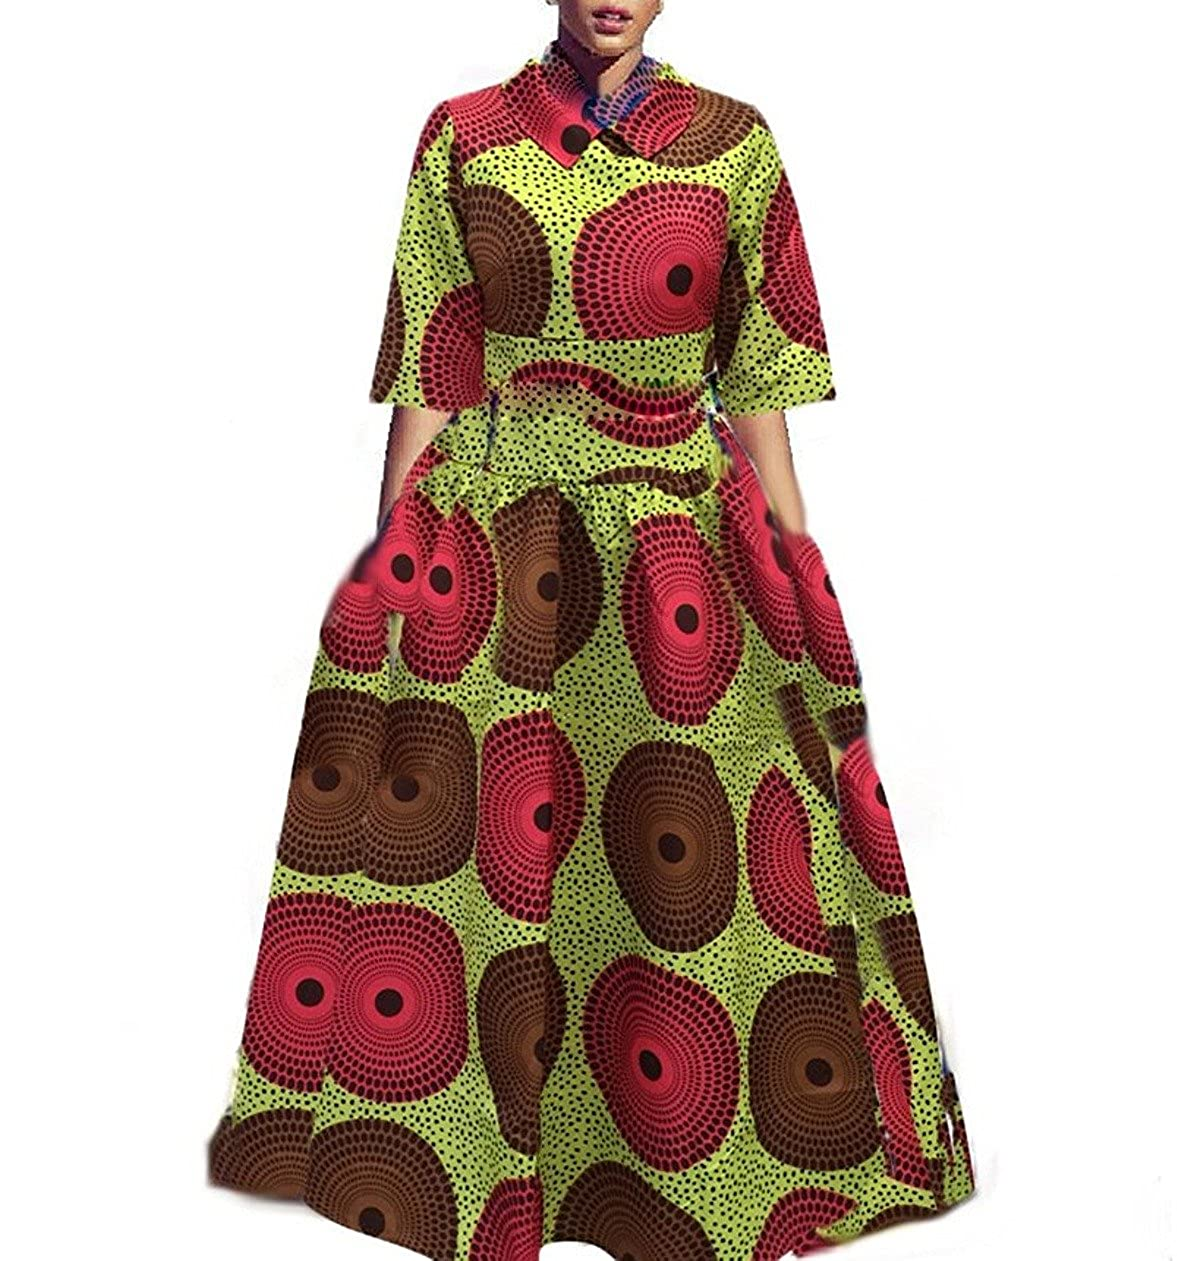 Sherrylily Women Plus Size 3/4 Sleeve African Graphic Printed Maxi Dress  Lapel Collar High Waist A-line Dress